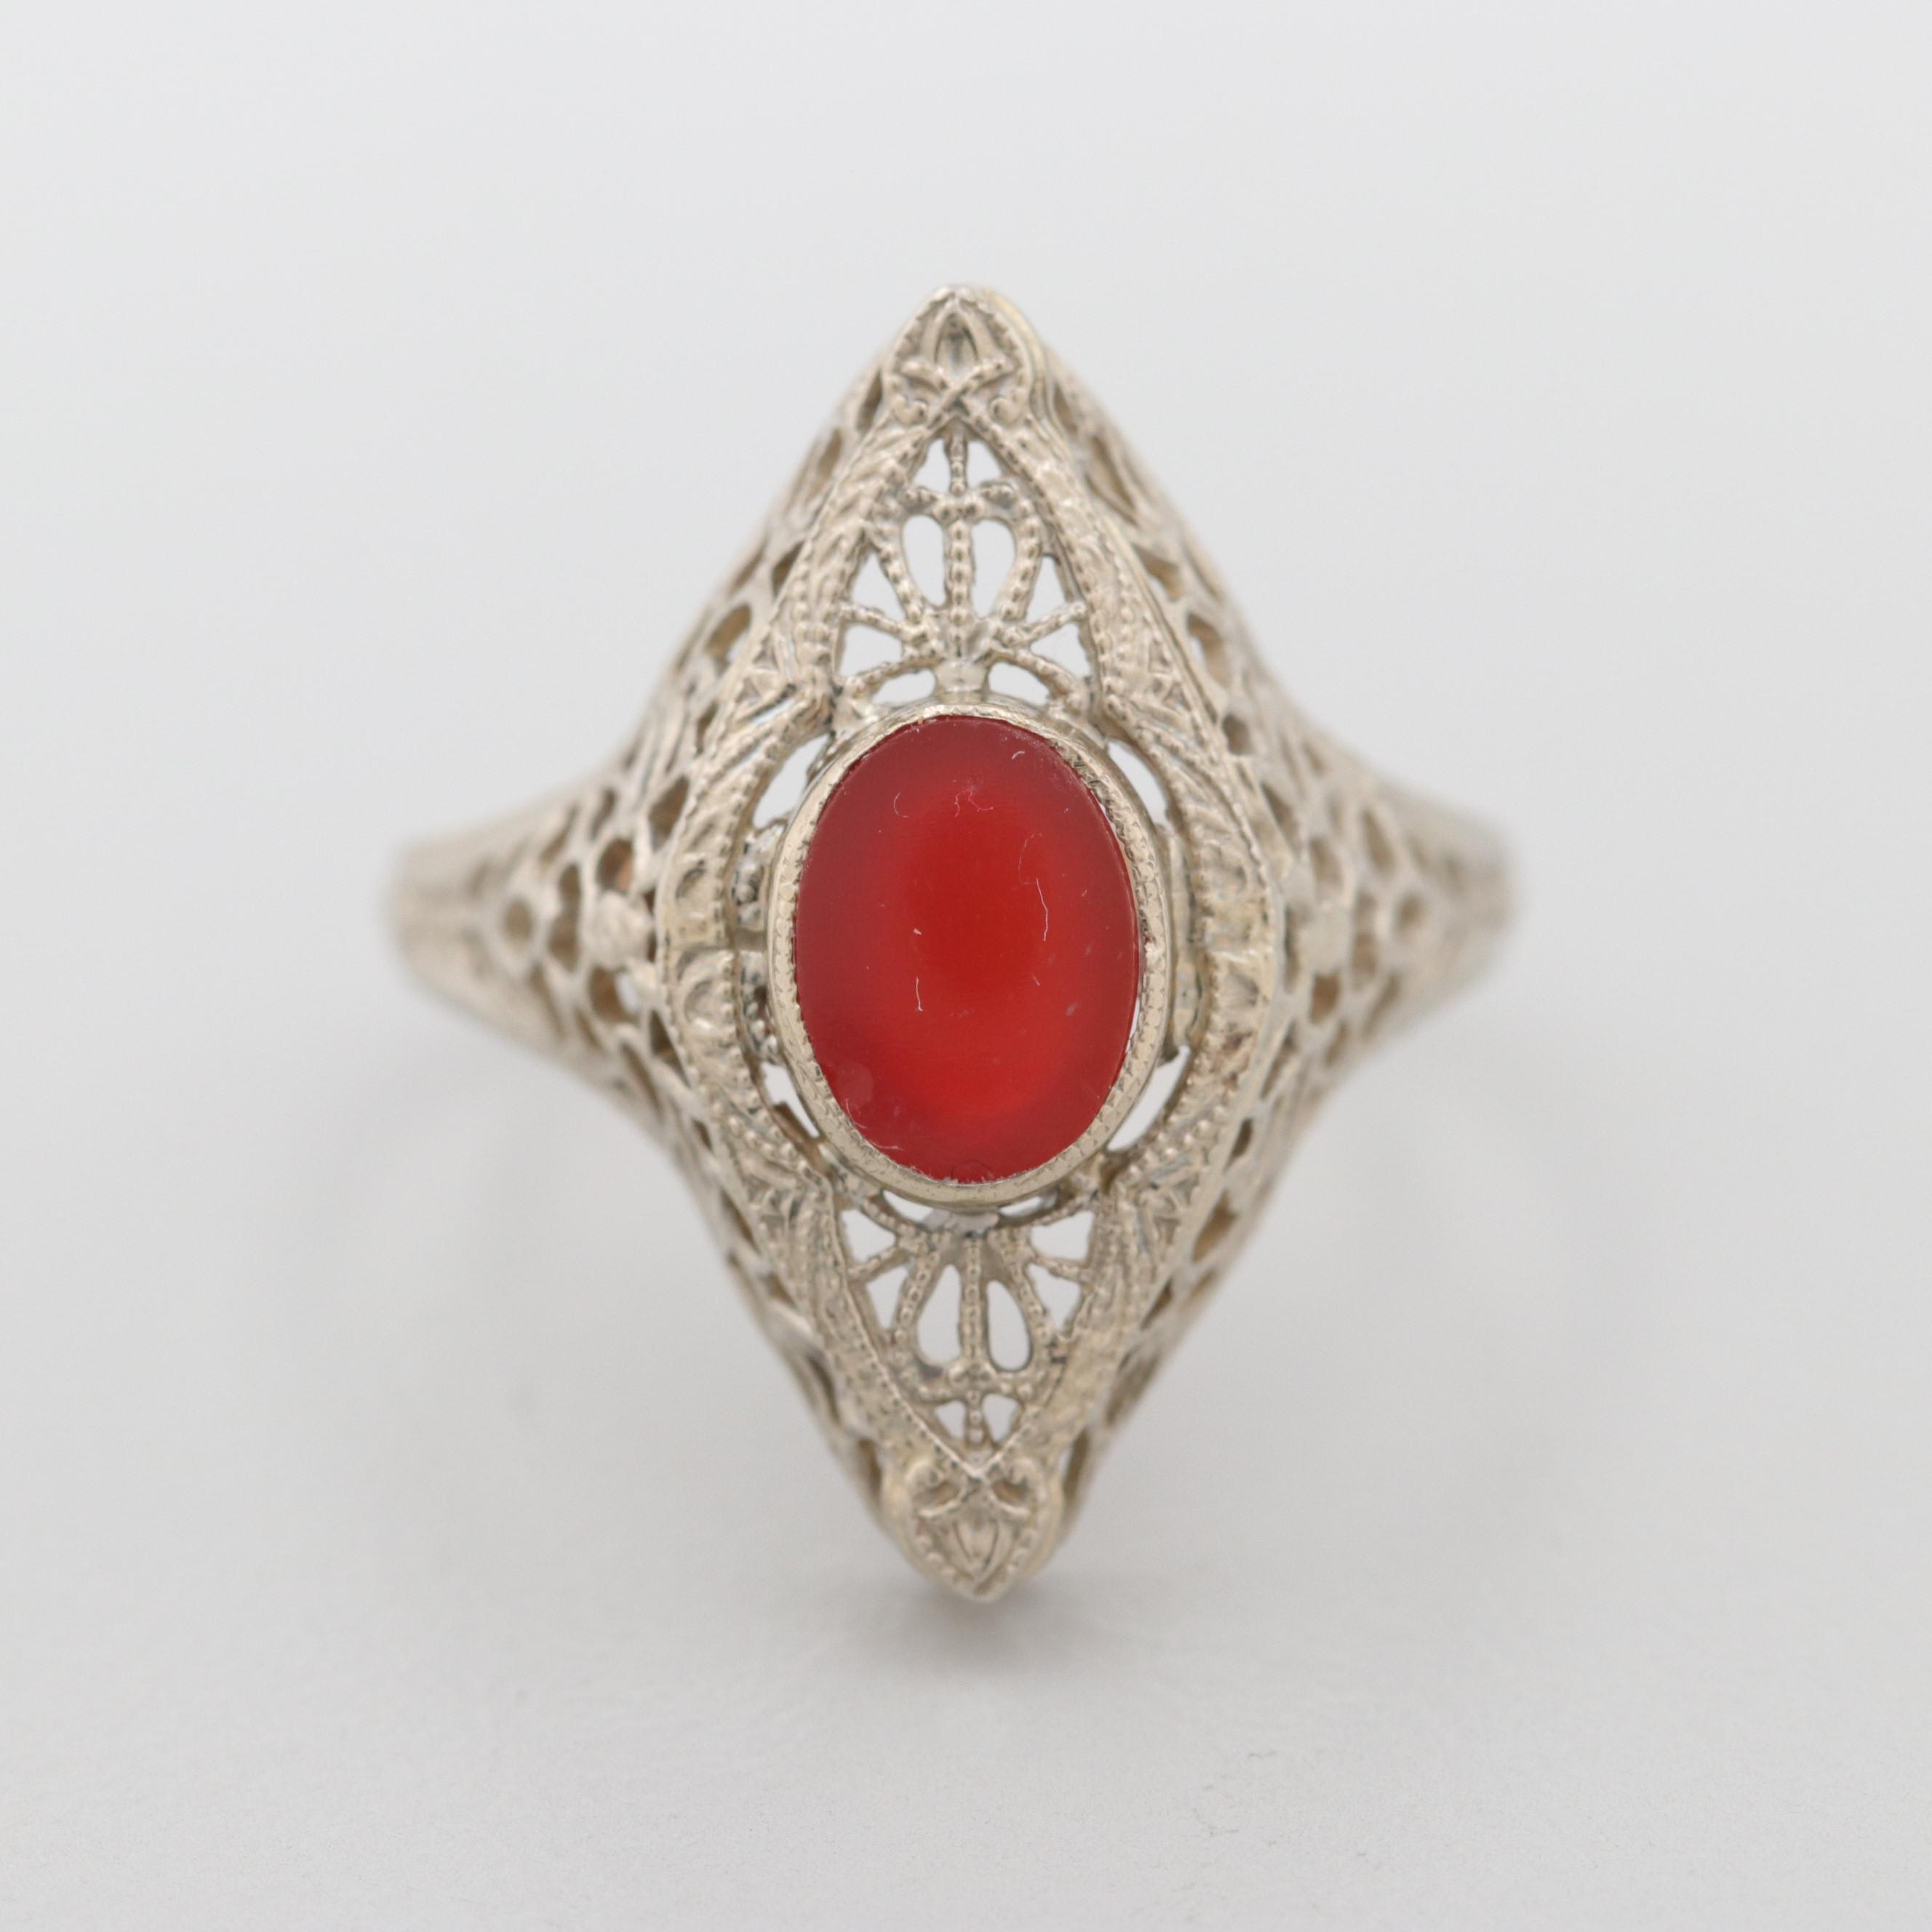 Art Deco 14K White Gold Carnelian Filigree Ring